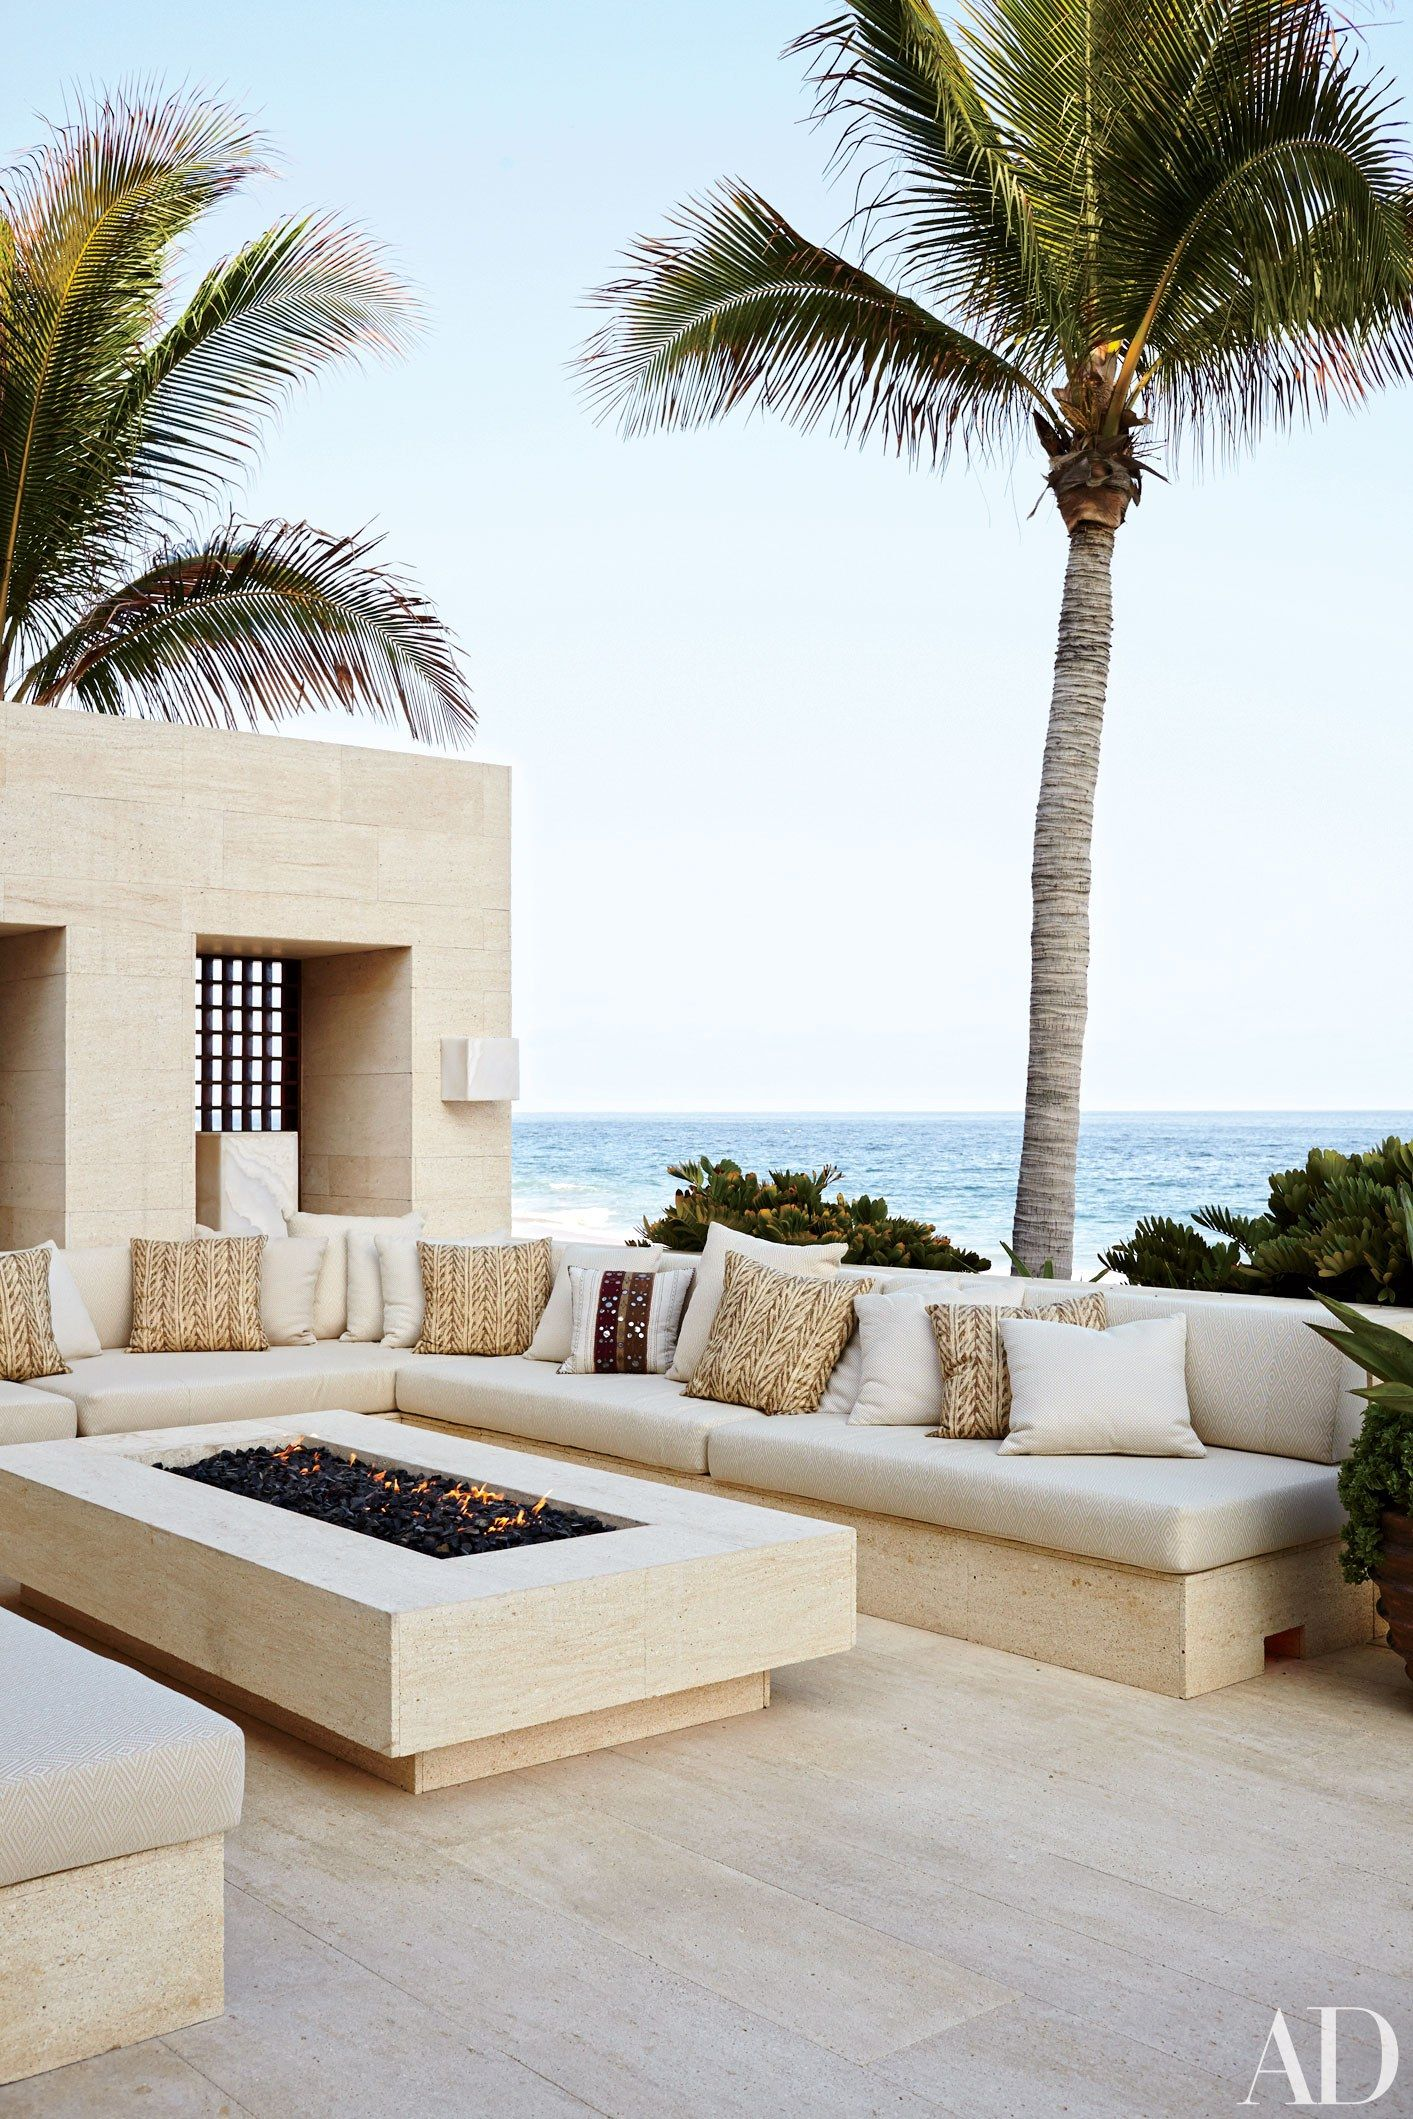 37 Stylish Patio & Outdoor Space Design Ideas | Rande gerber ...